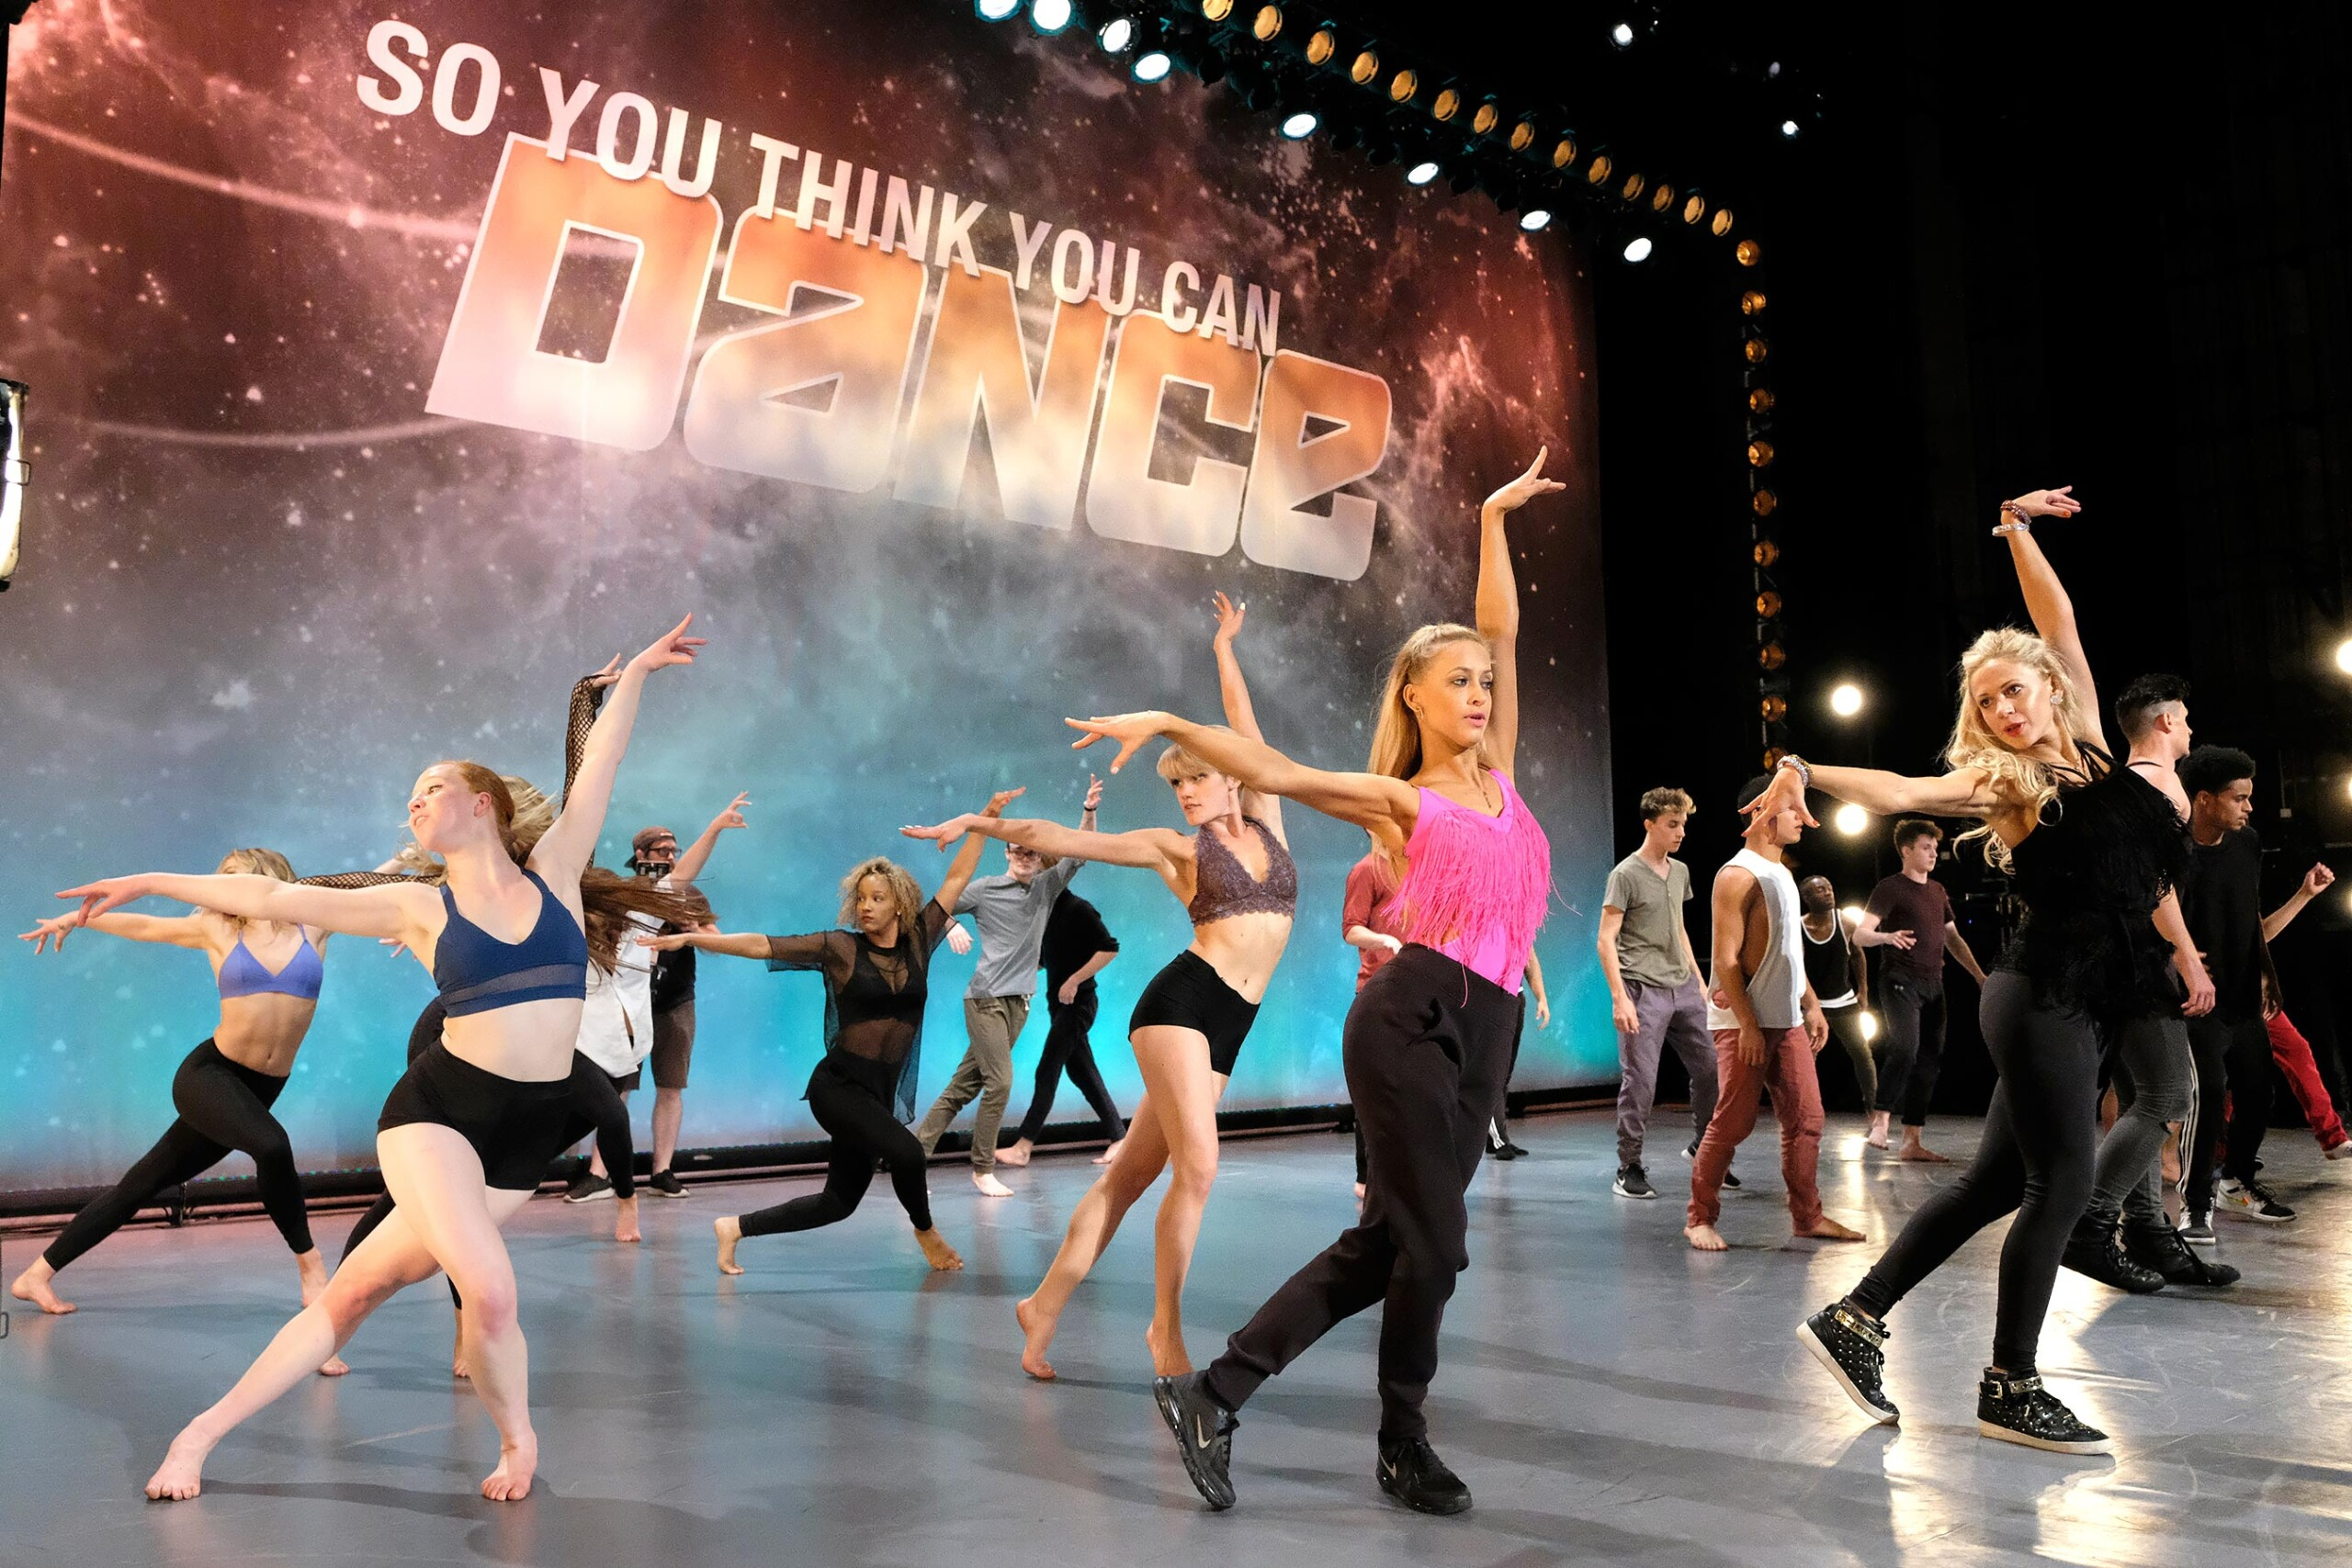 How to Watch So You Think You Can Dance Online: Live